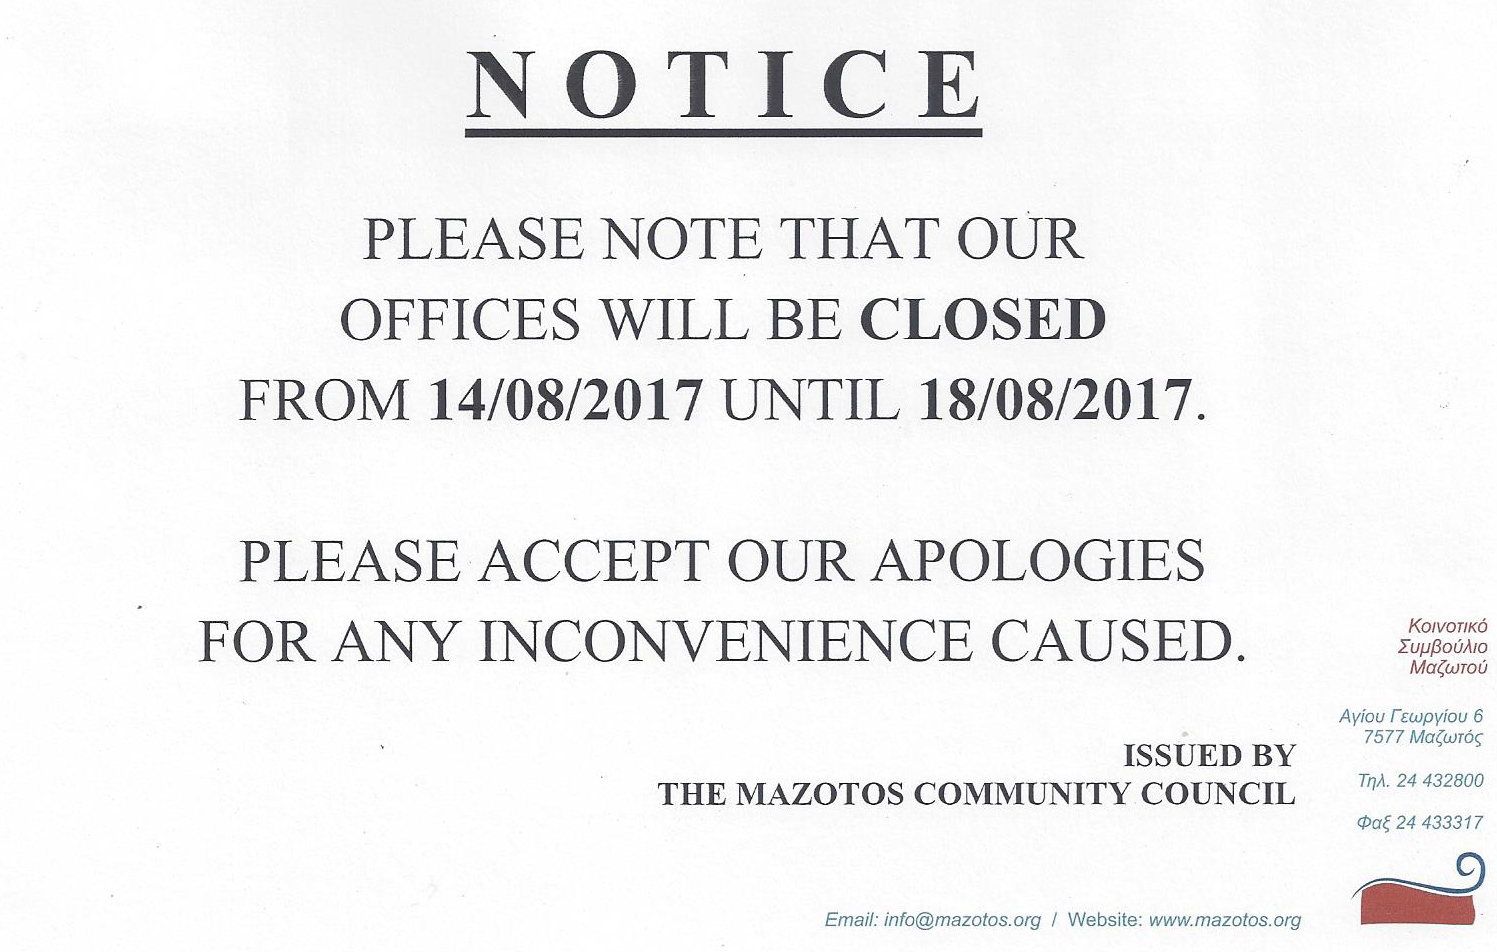 Closed Office 14-18 08 2017 – Μαζωτός/Mazotos